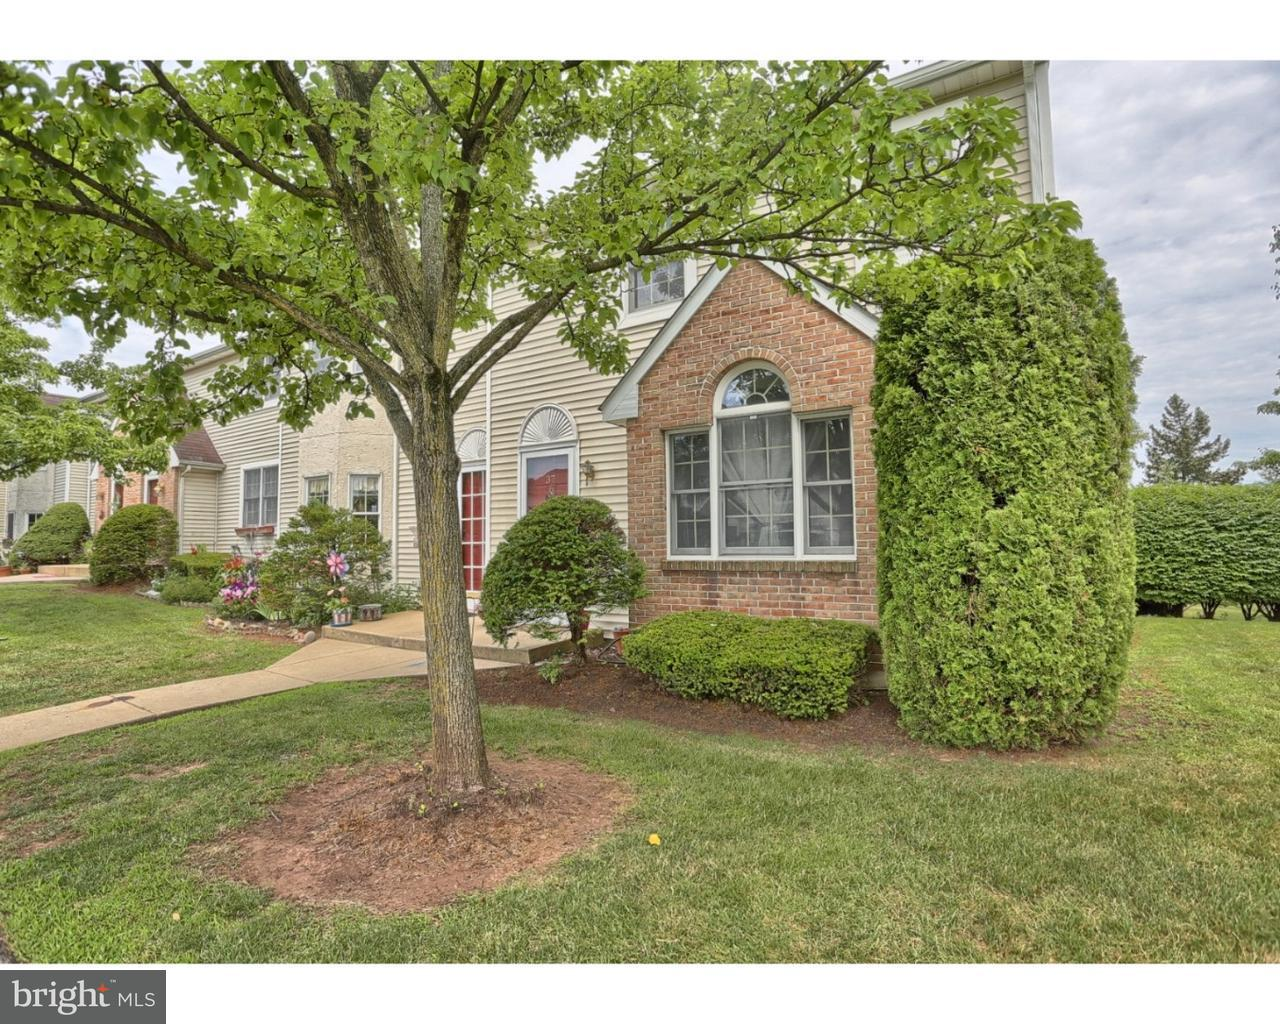 37-6 CRANBERRY RDG, READING - Listed at $135,000, READING